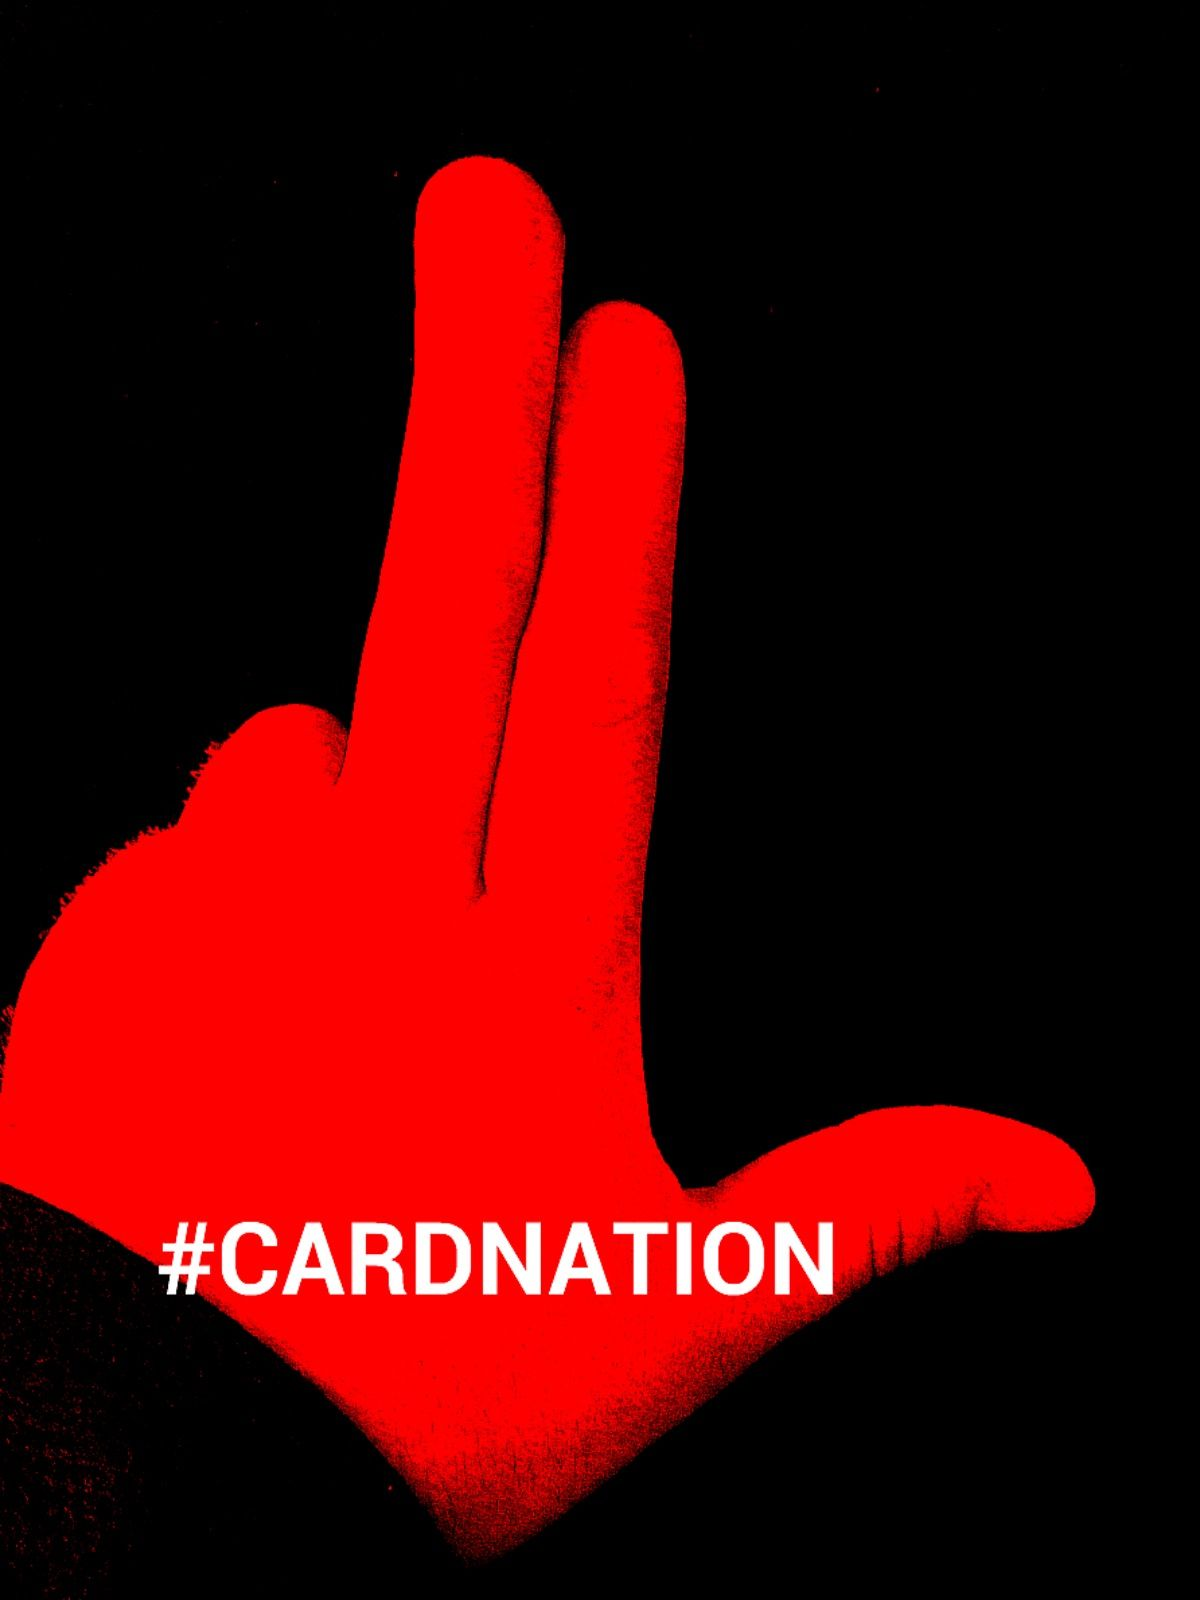 Put Your L S Up To The Sky Cardnation L1c4 Louisville Cardinals Basketball Louisville Cardinals Football Louisville Basketball